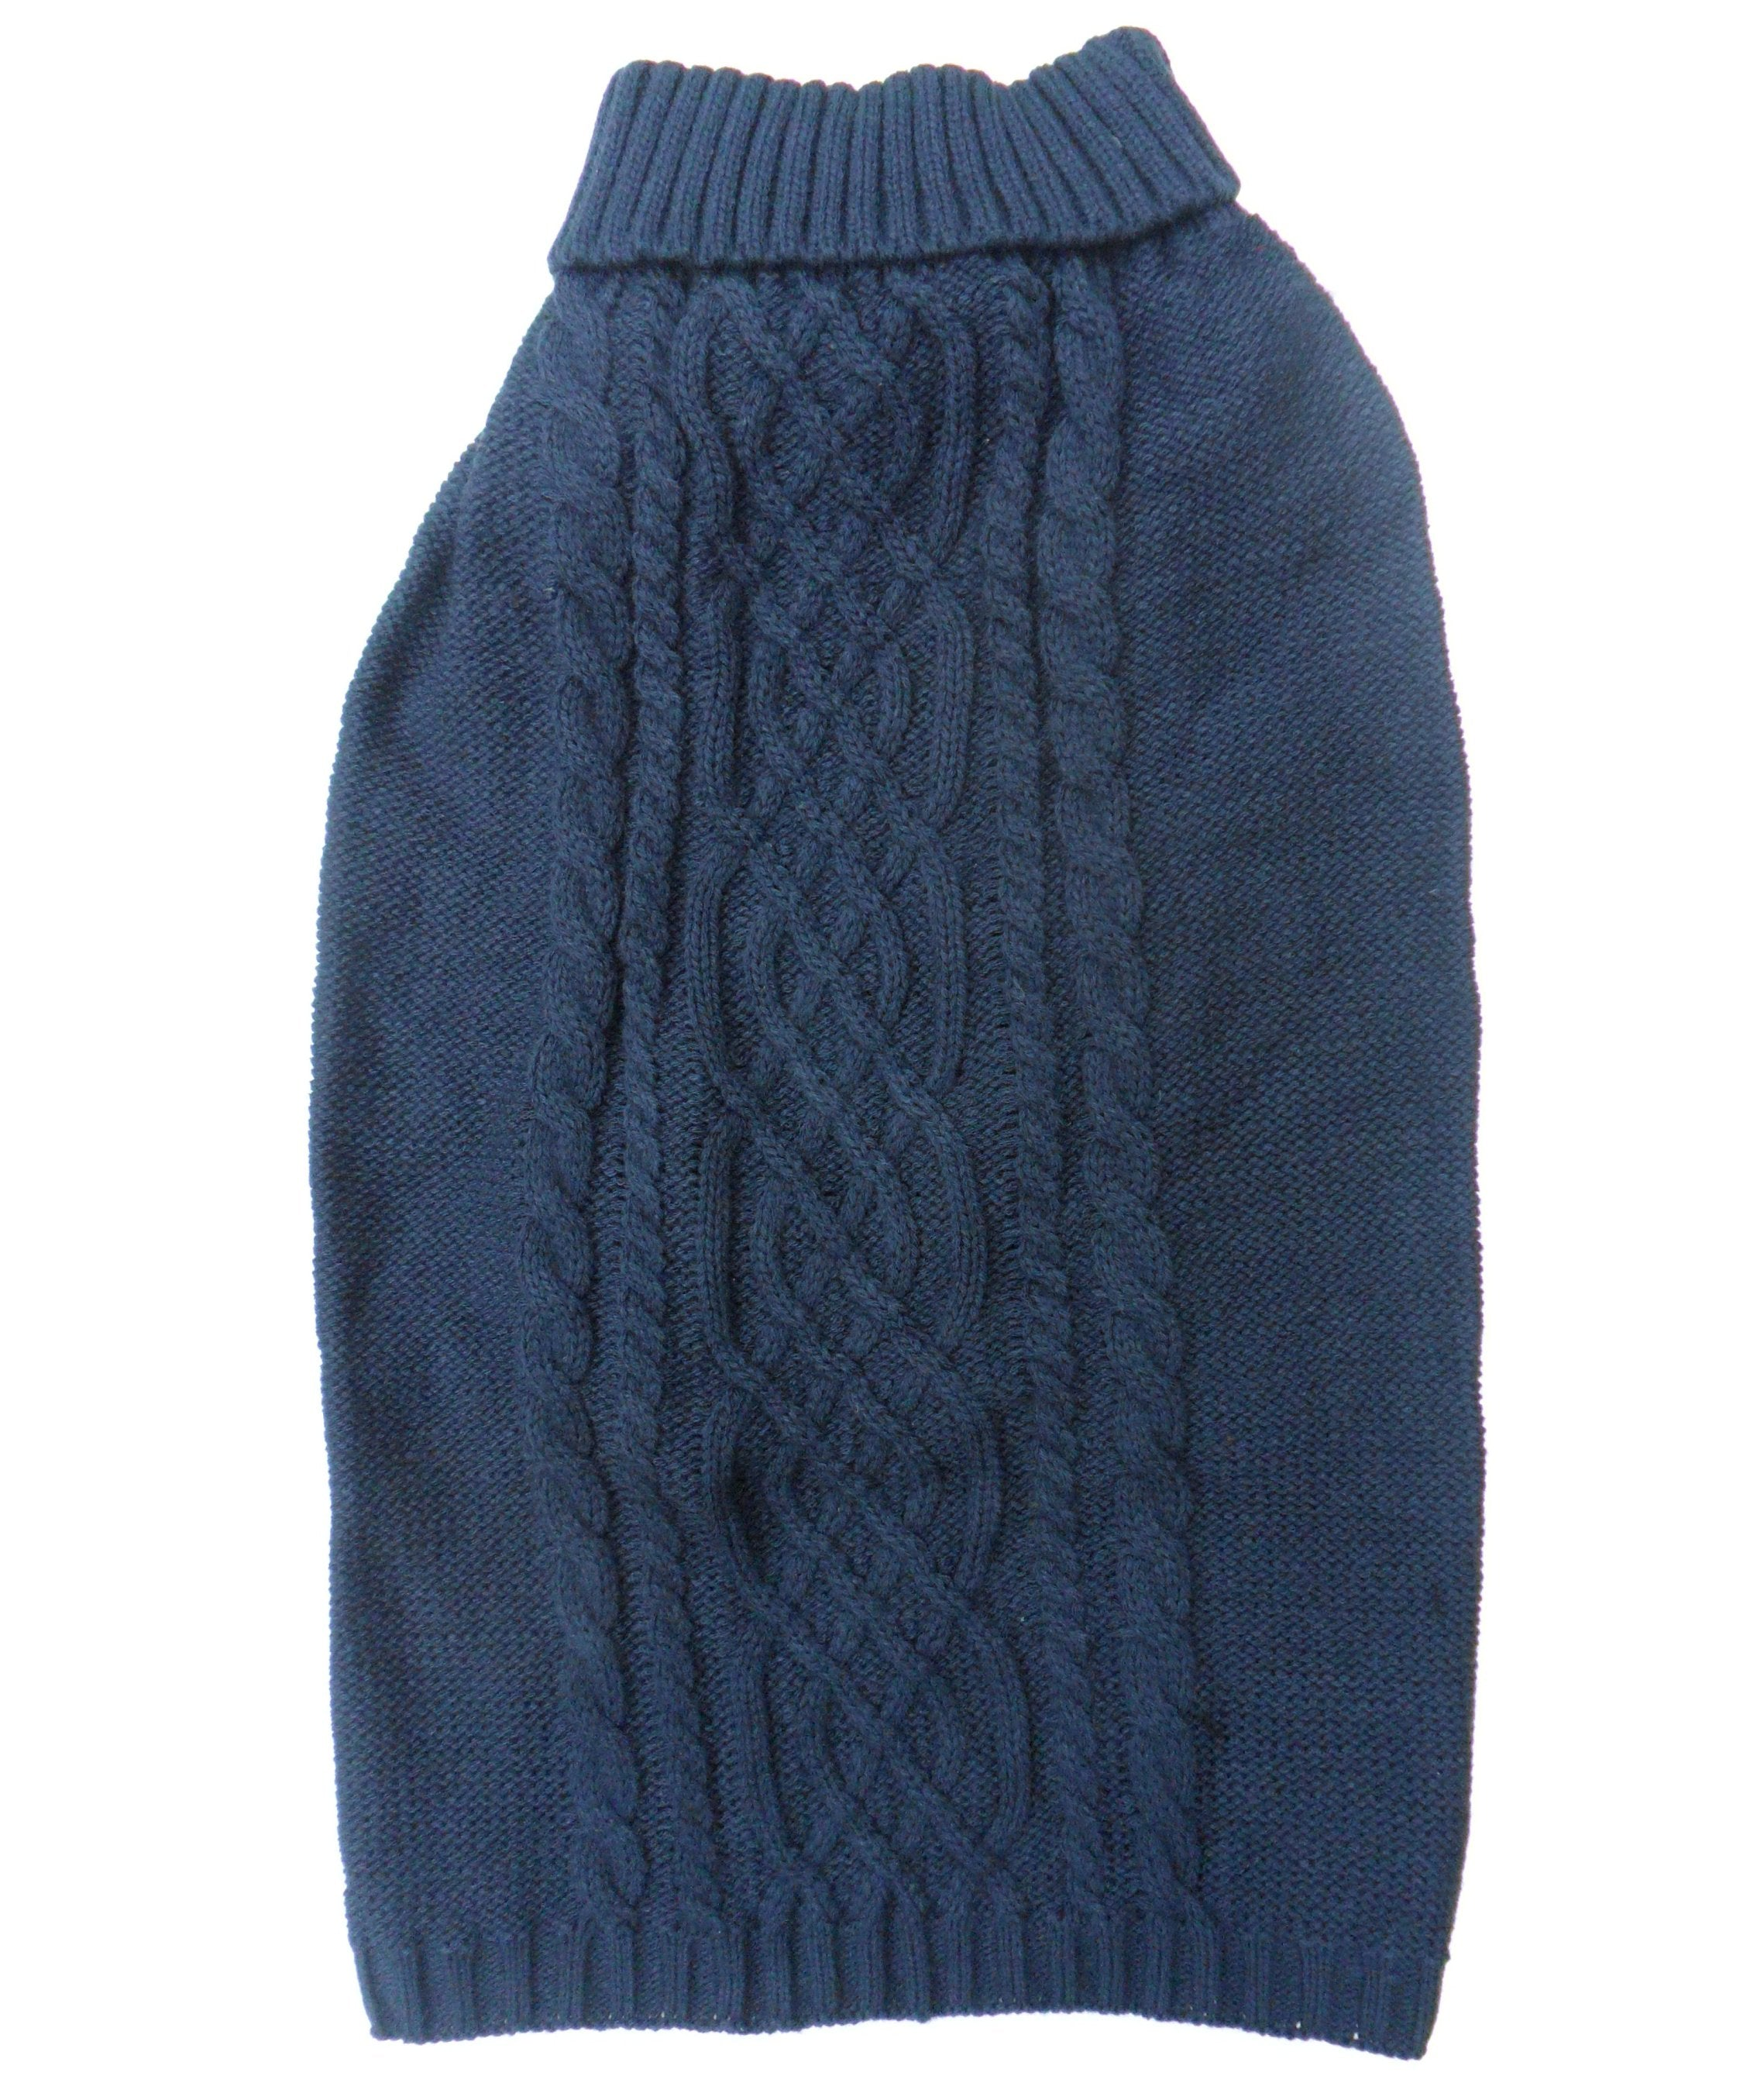 Cable Knit Dog Sweaters Jumpers in Blue, Berry, Beige, Black, Gray